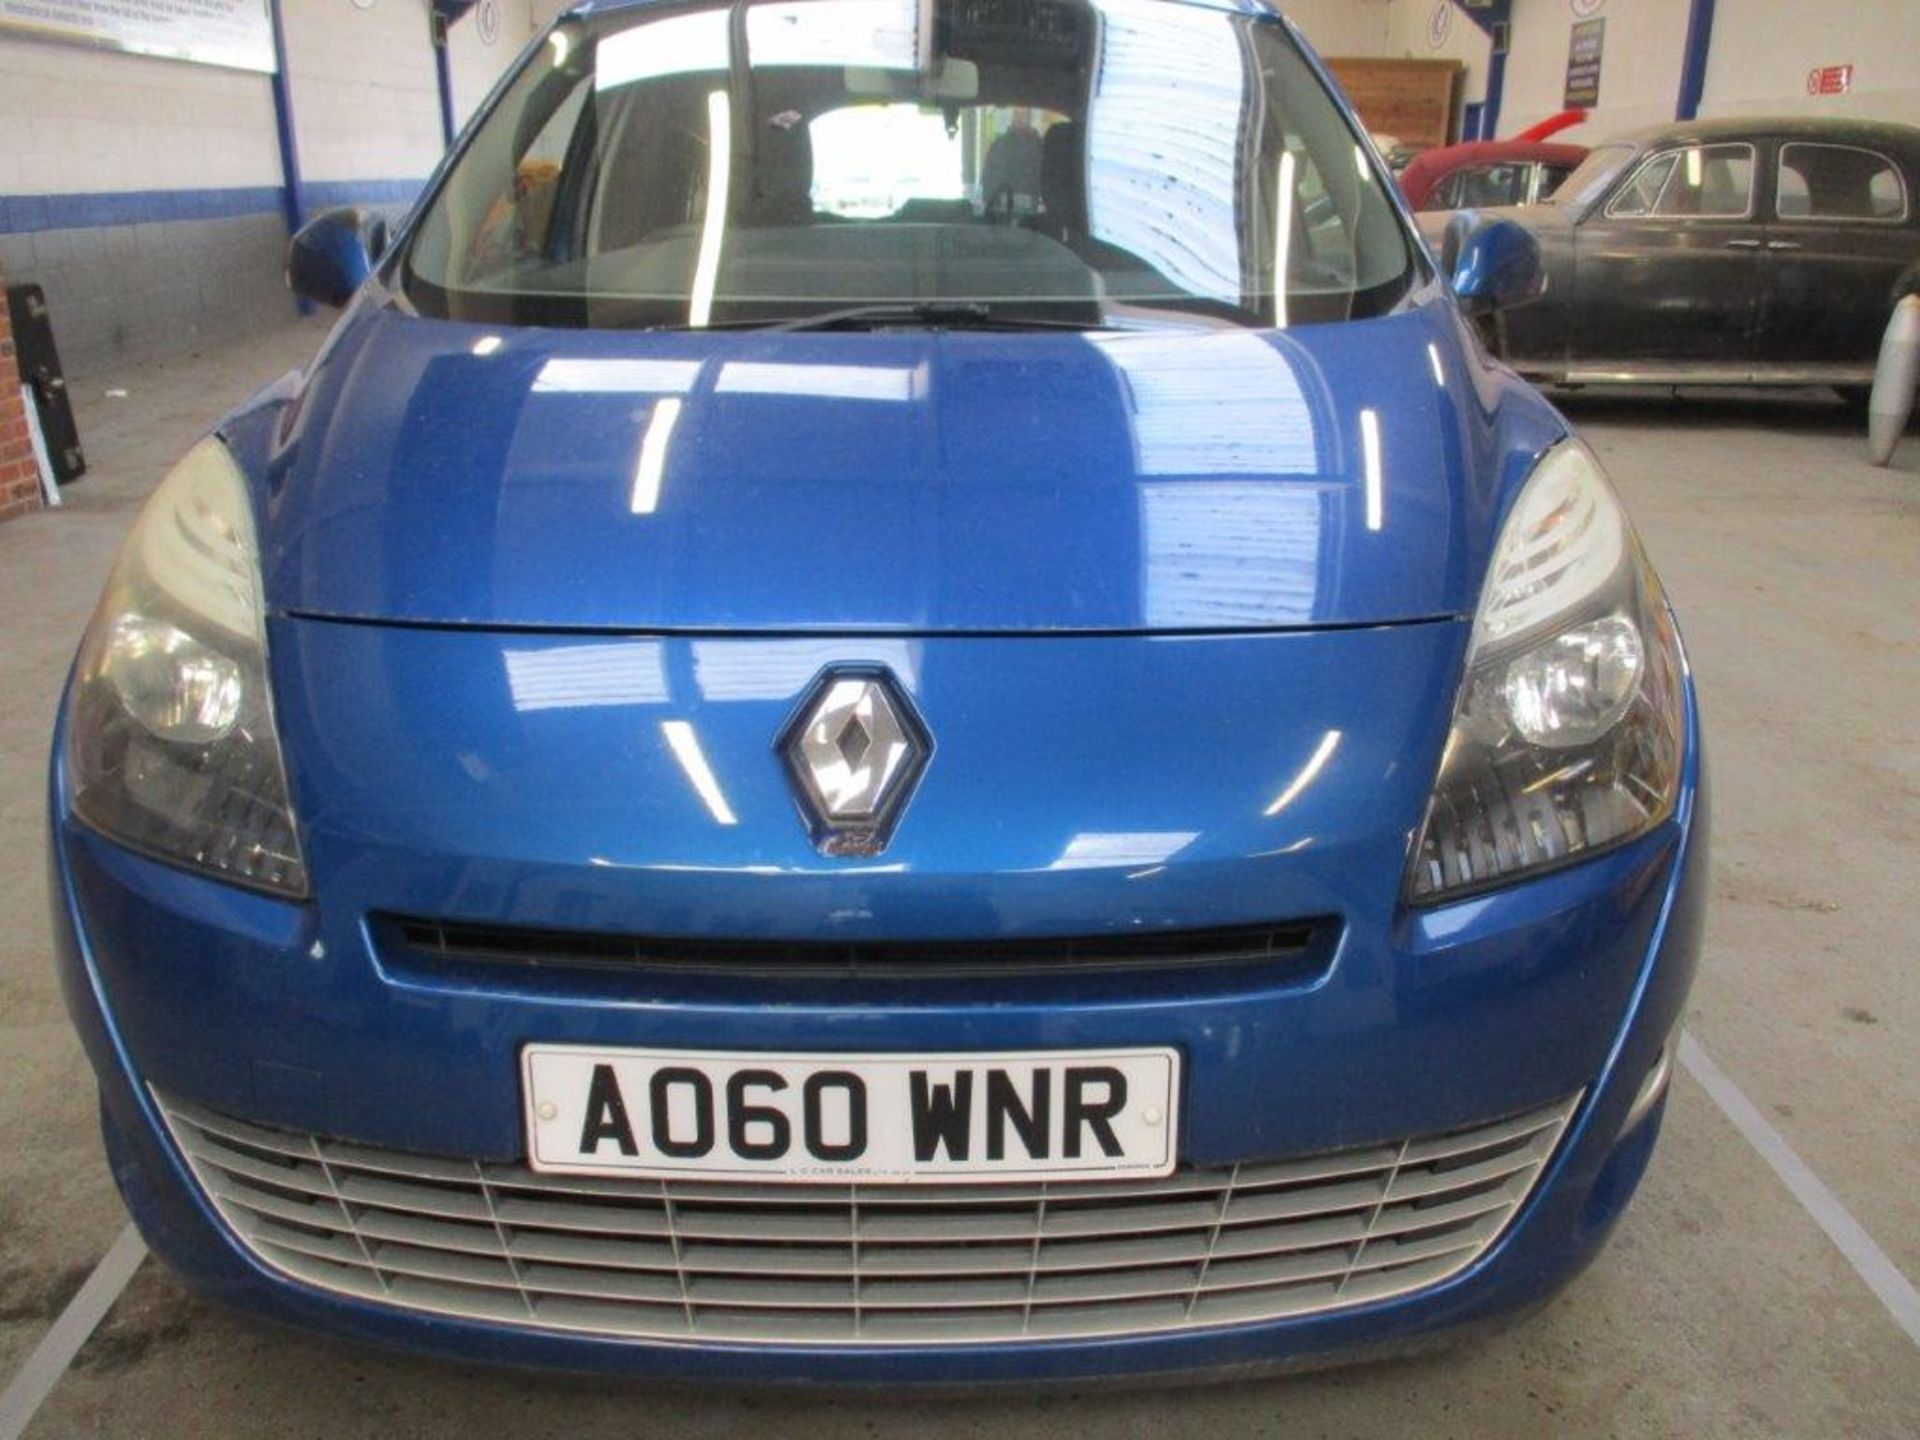 10 10 Renault Grd Scenic Dyn T-T - Image 5 of 21